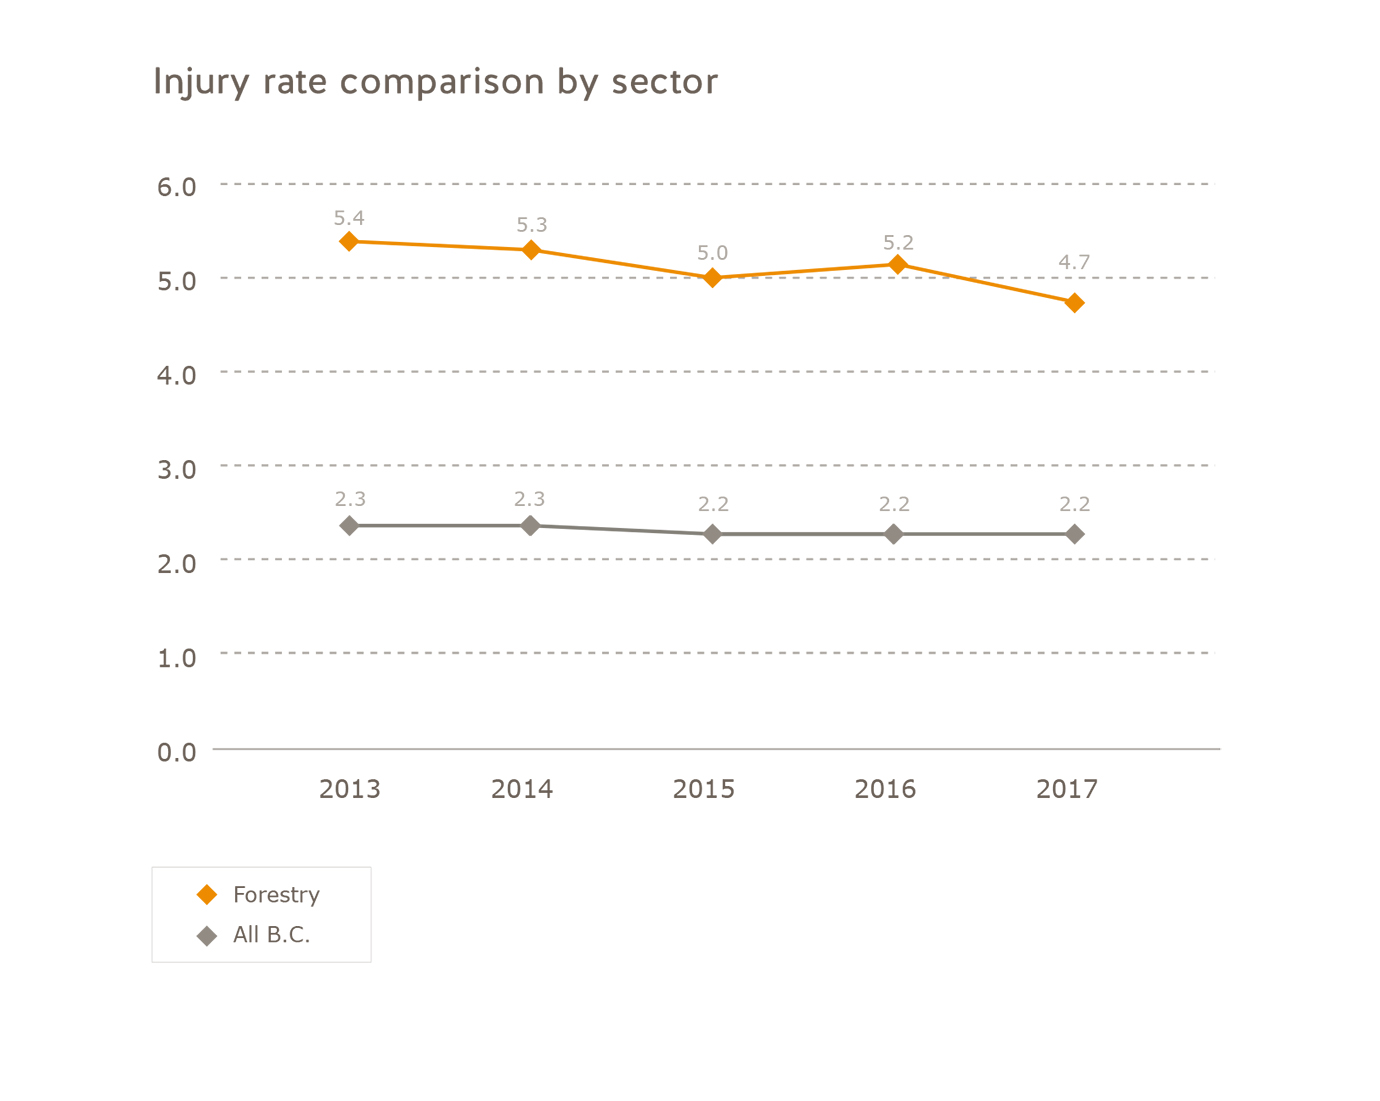 Injury rate comparison forestry industry 2013 to 2017. Forestry: 2013 = 5.4, 2014 = 5.3, 2015 = 5.0, 2016 = 5.2, 2017 = 4.7. All of B.C.: 2013 = 2.3, 2014 = 2.3, 2015 = 2.2, 2016 = 2.2, 2017 = 2.2.